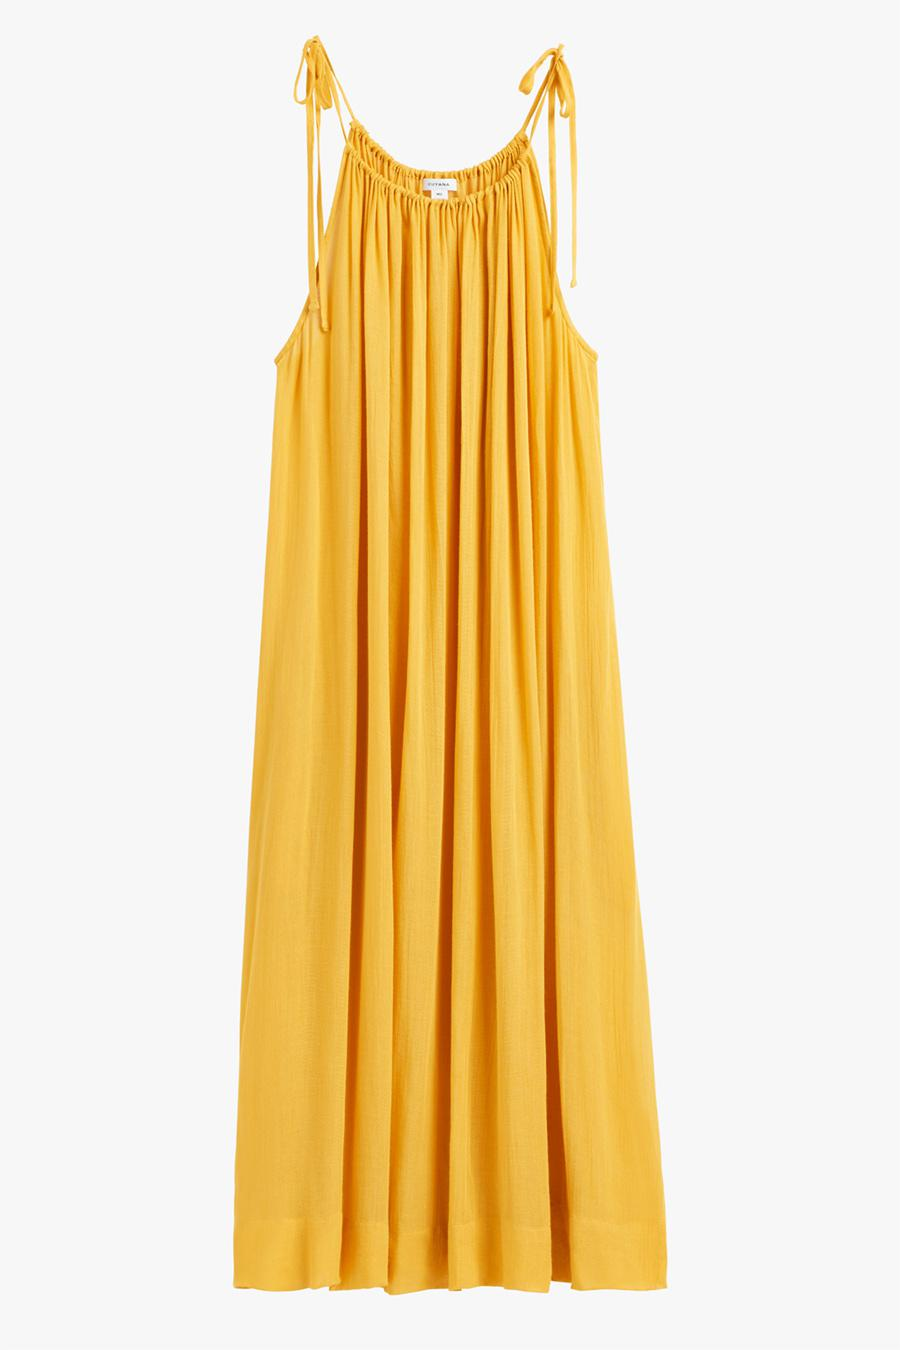 Women's Gathered-Neck Maxi Coverup in Daffodil | Size: 0